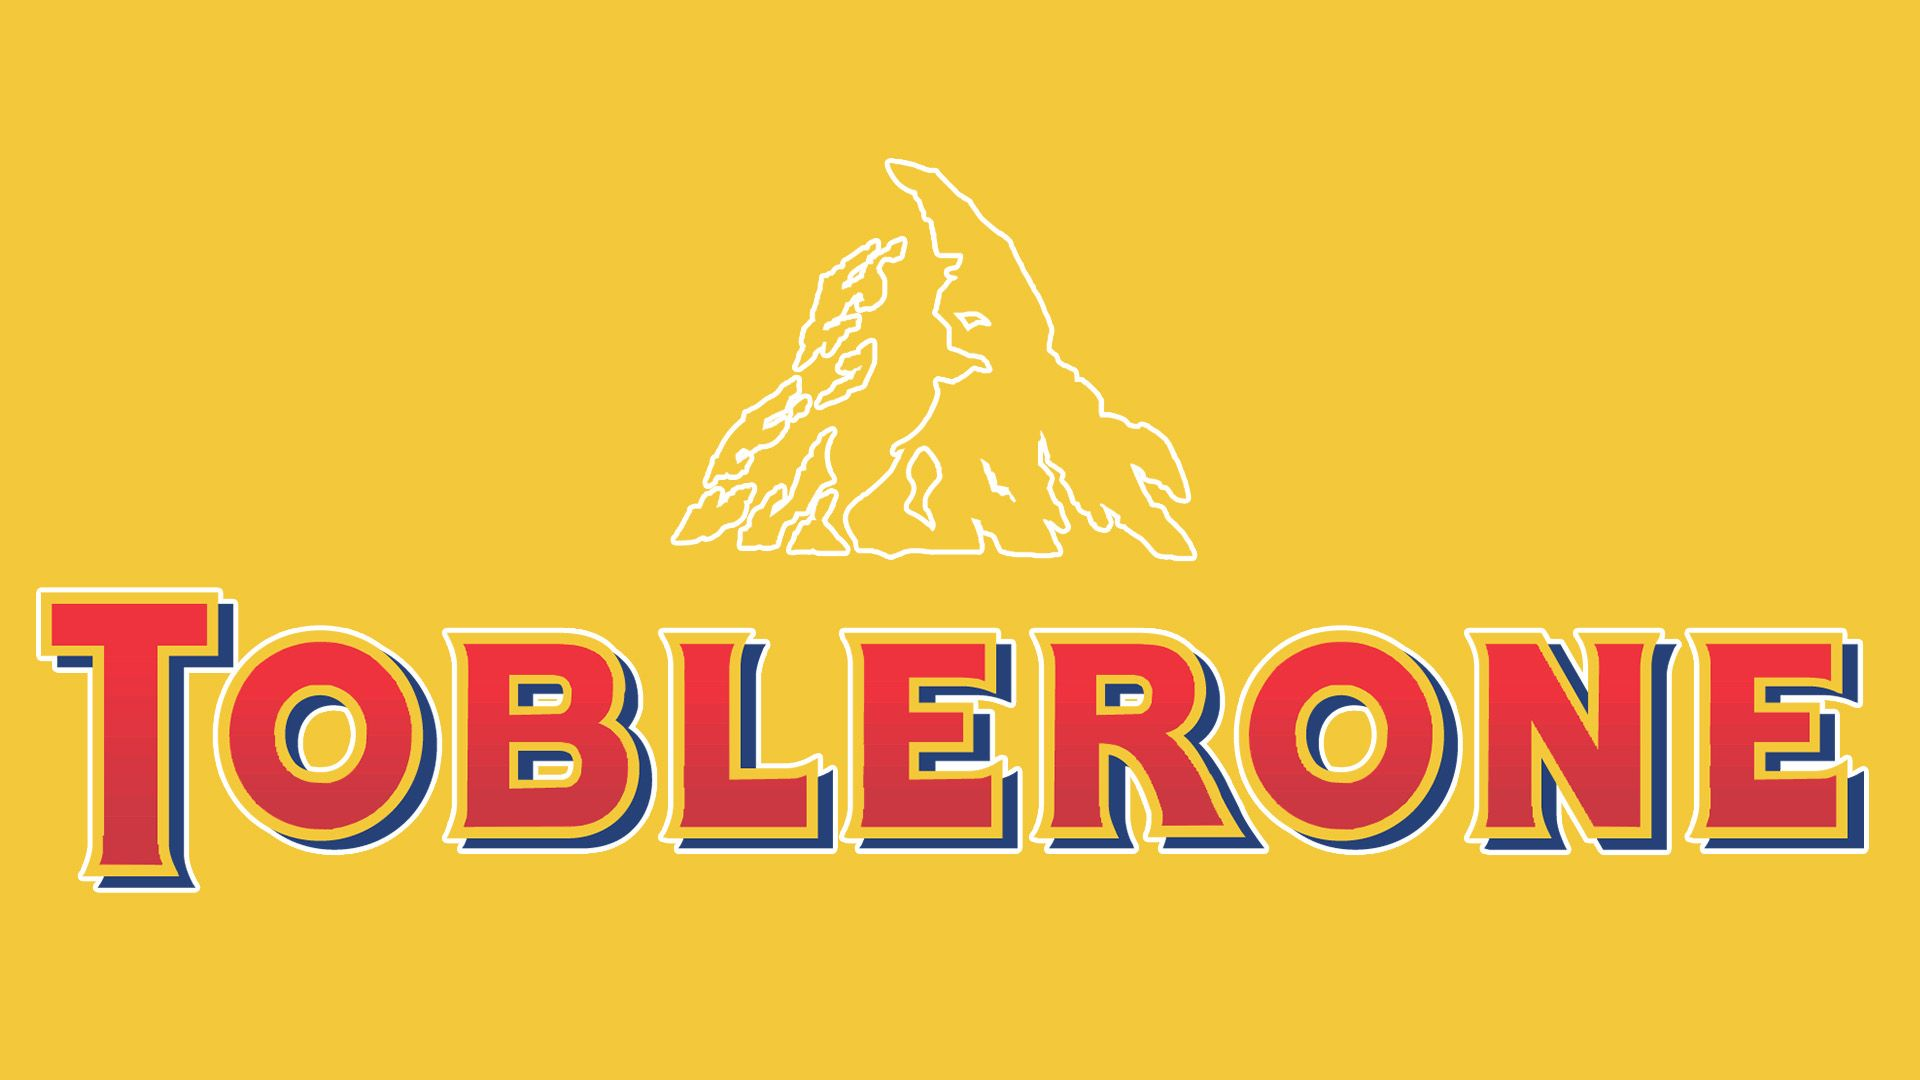 Toblerone Logo - Toblerone logo, symbol, meaning, History and Evolution